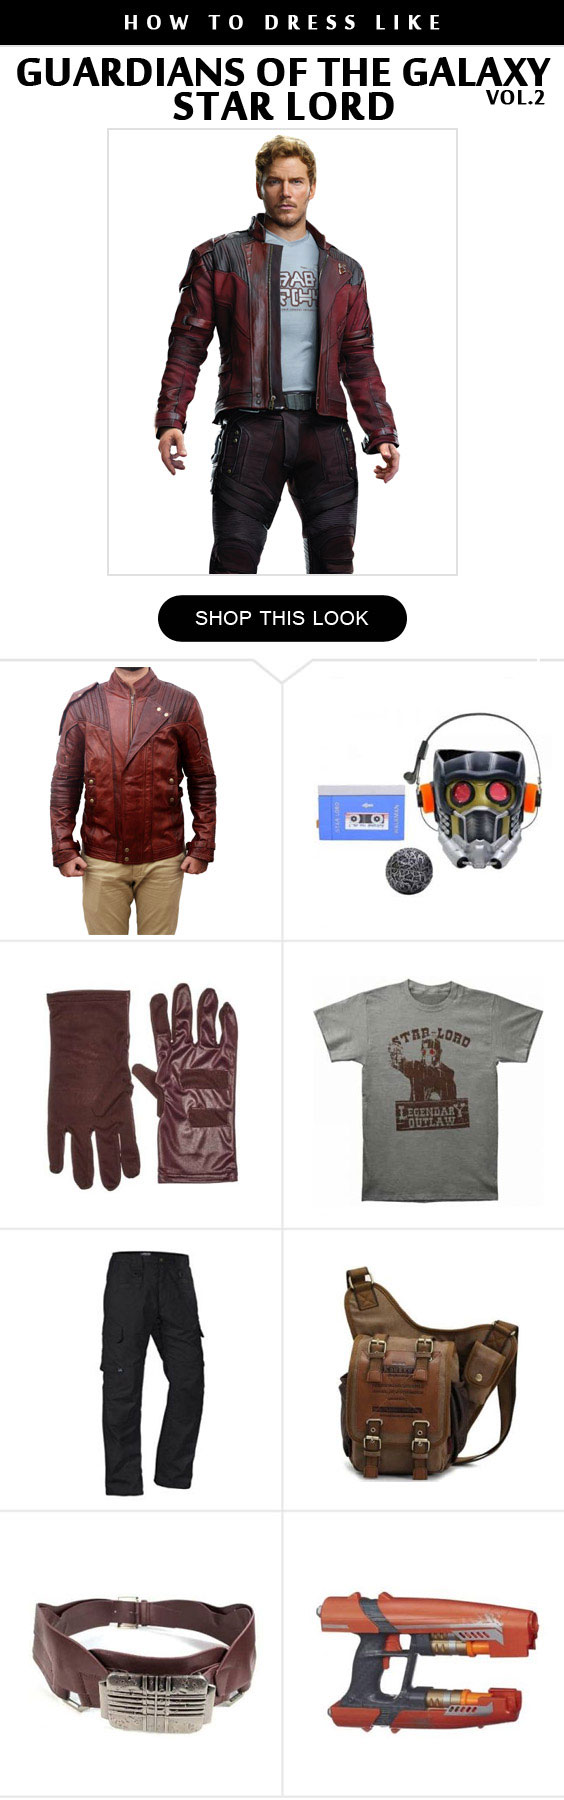 Star Lord 2 Costume Infographic